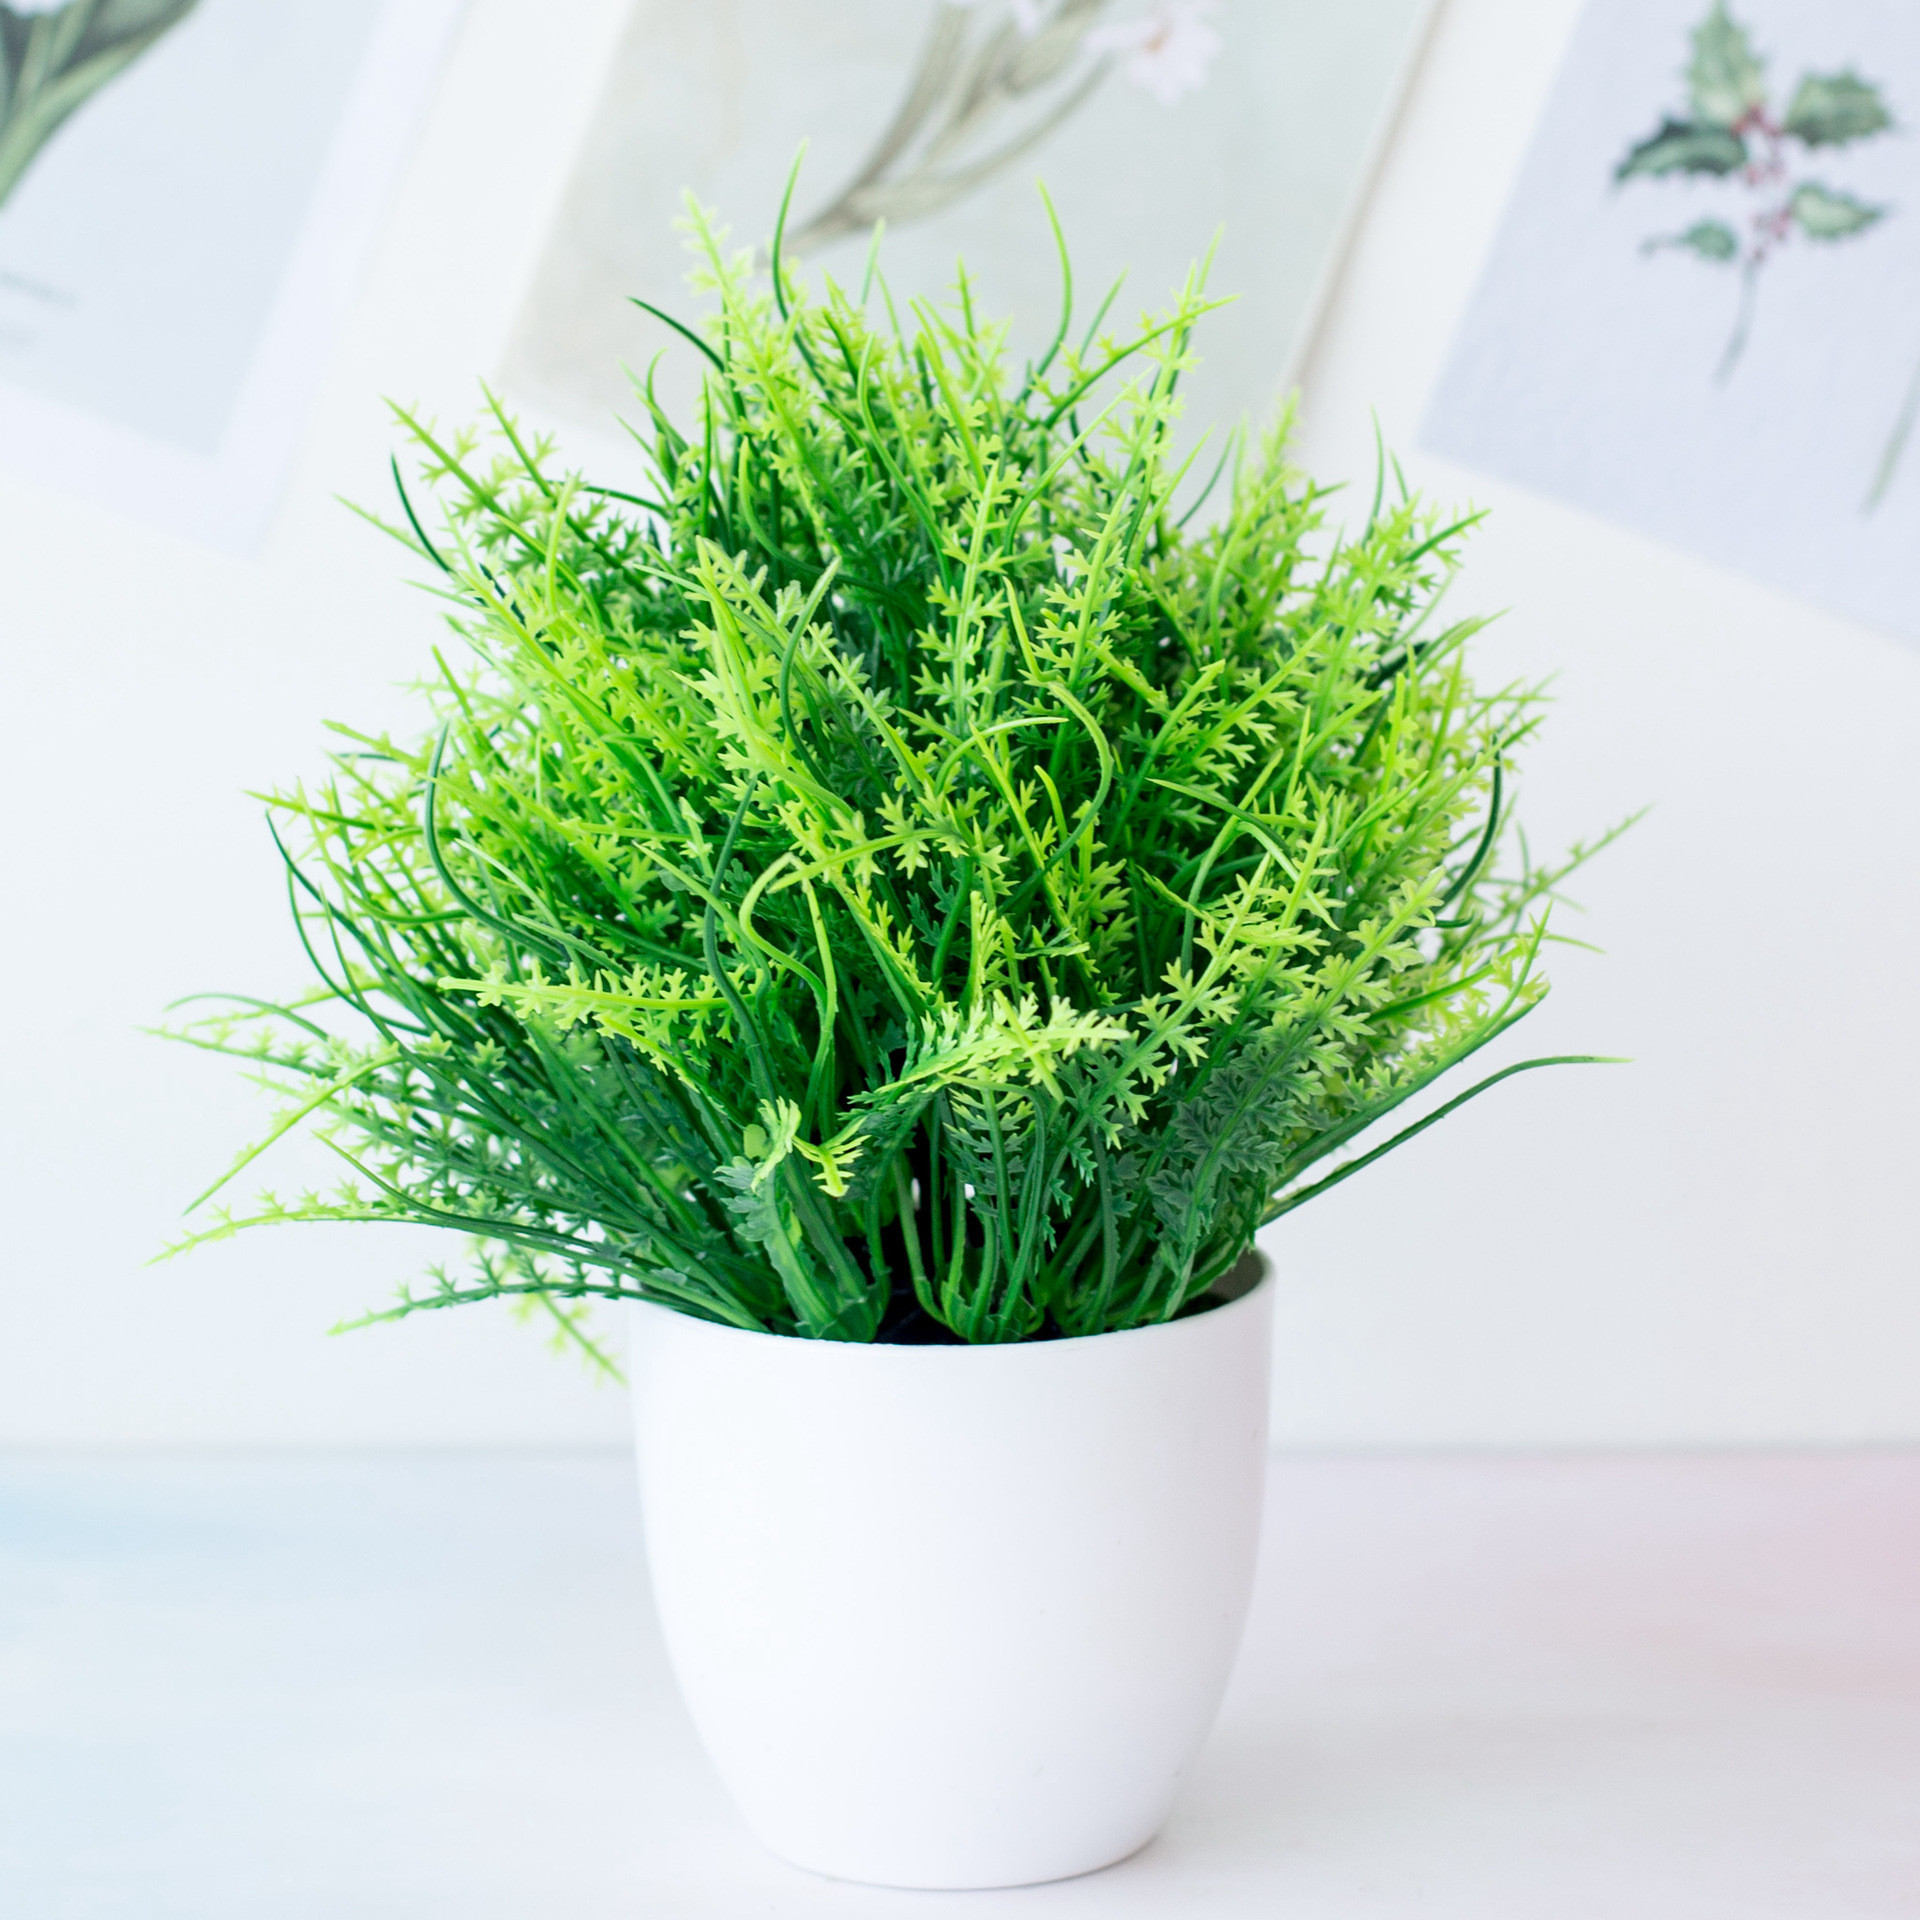 1pc Artificial Plants Green Bonsai Small Tree Pot Plants Fake Flower Potted Ornaments for Home Decoration Craft Plant Decorative 5